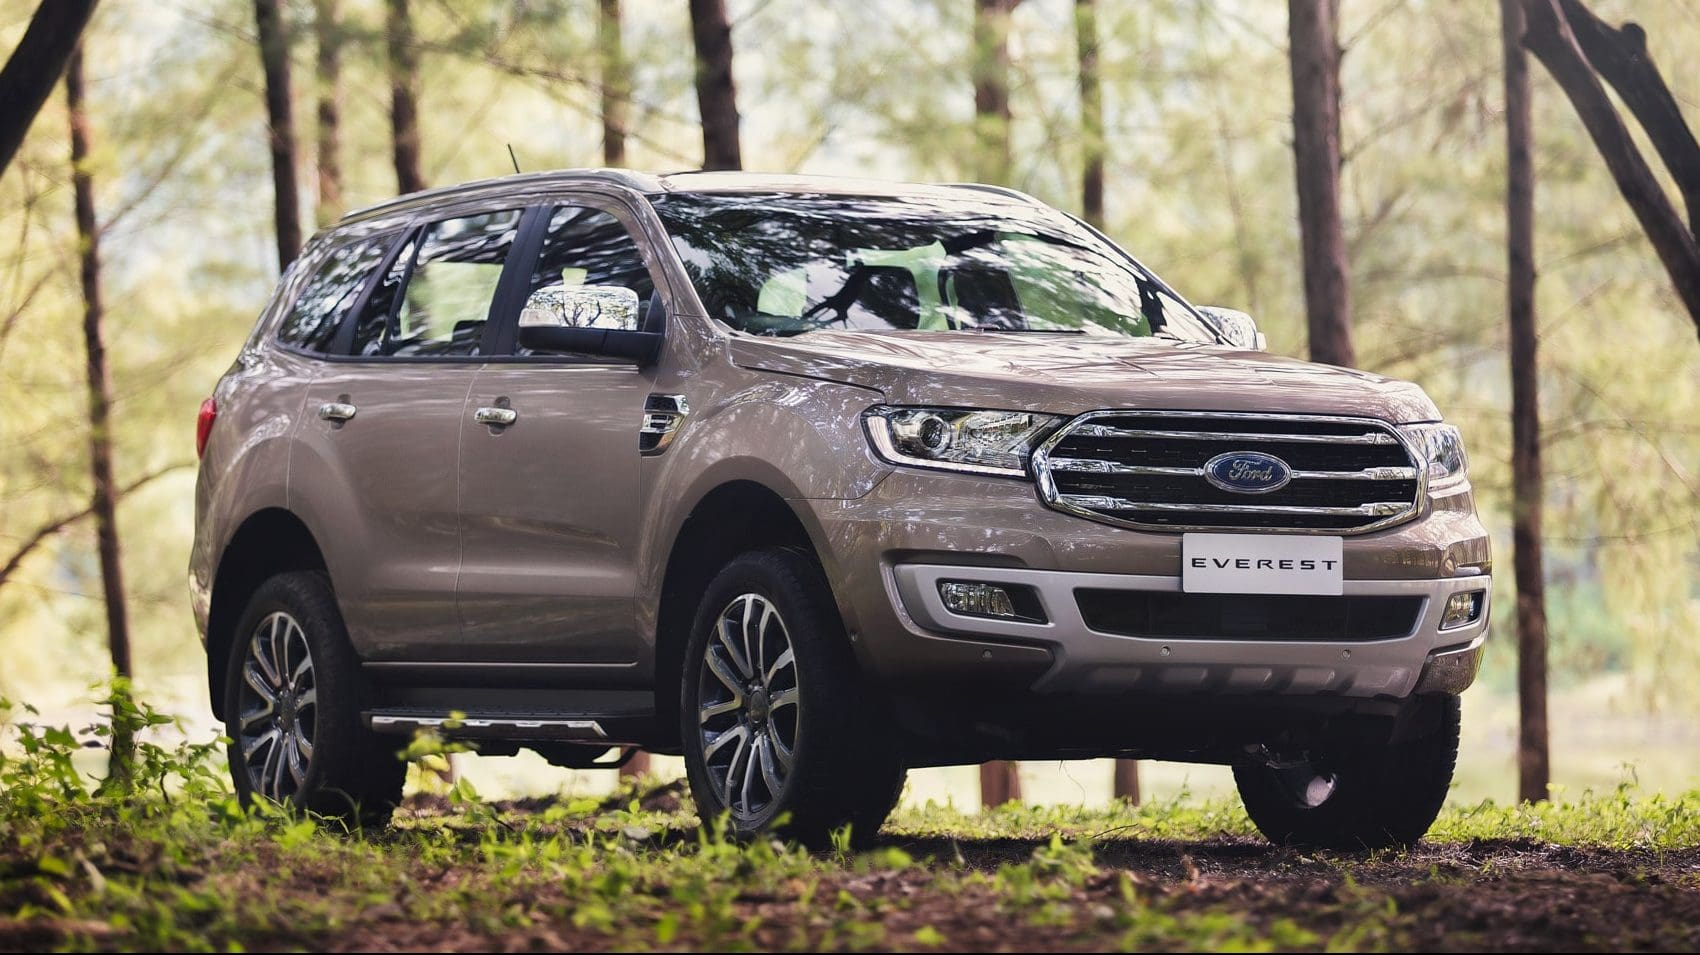 Here's What to Expect with the Updated 2019 Ford Everest